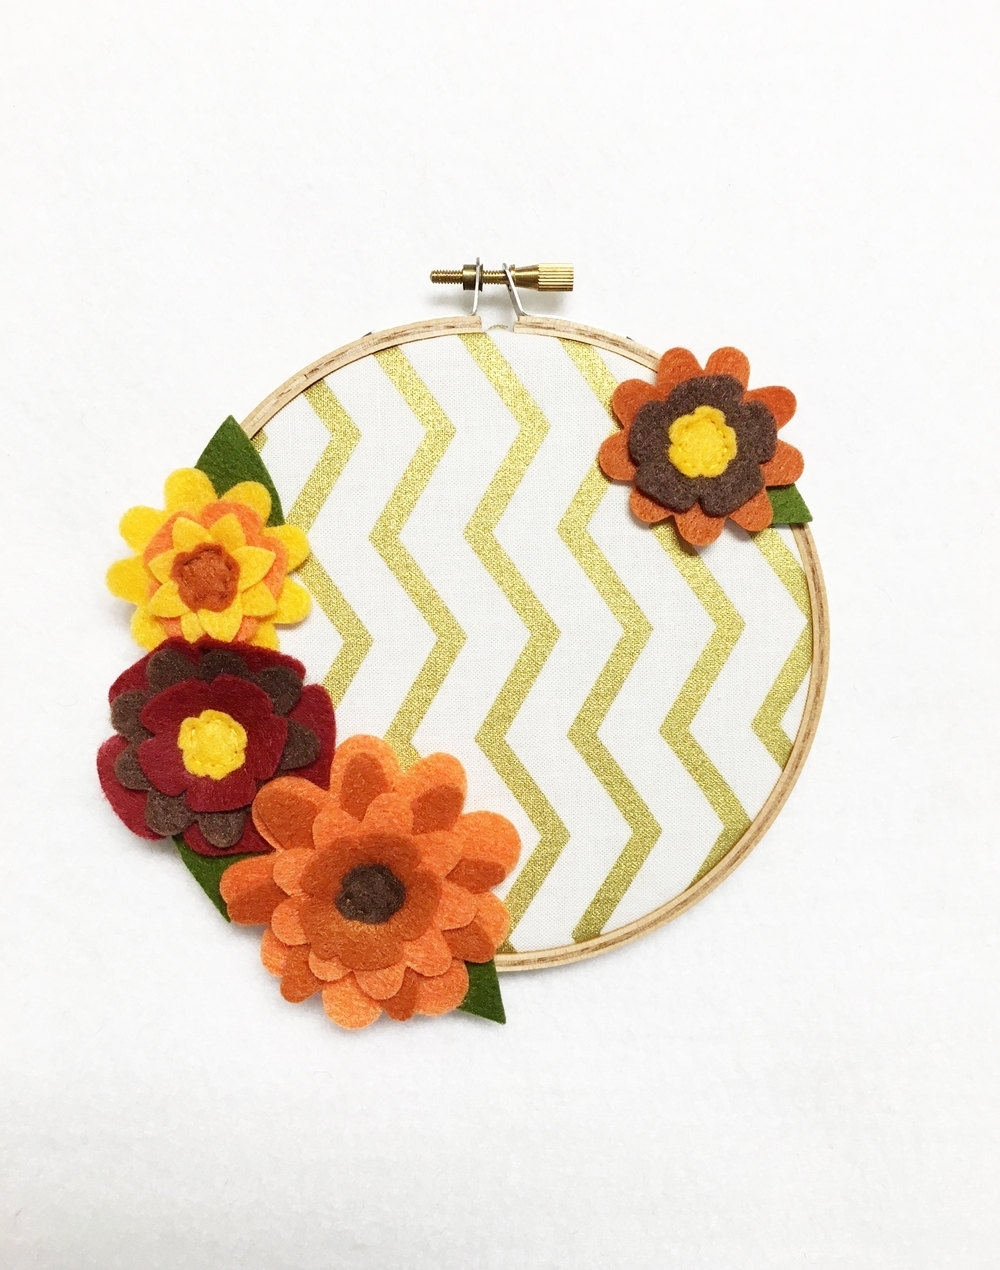 Fabric Wall Art, Embroidery Hoop Art, Regal Autumn, Fall For Most Current Embroidery Hoop Fabric Wall Art (View 10 of 15)